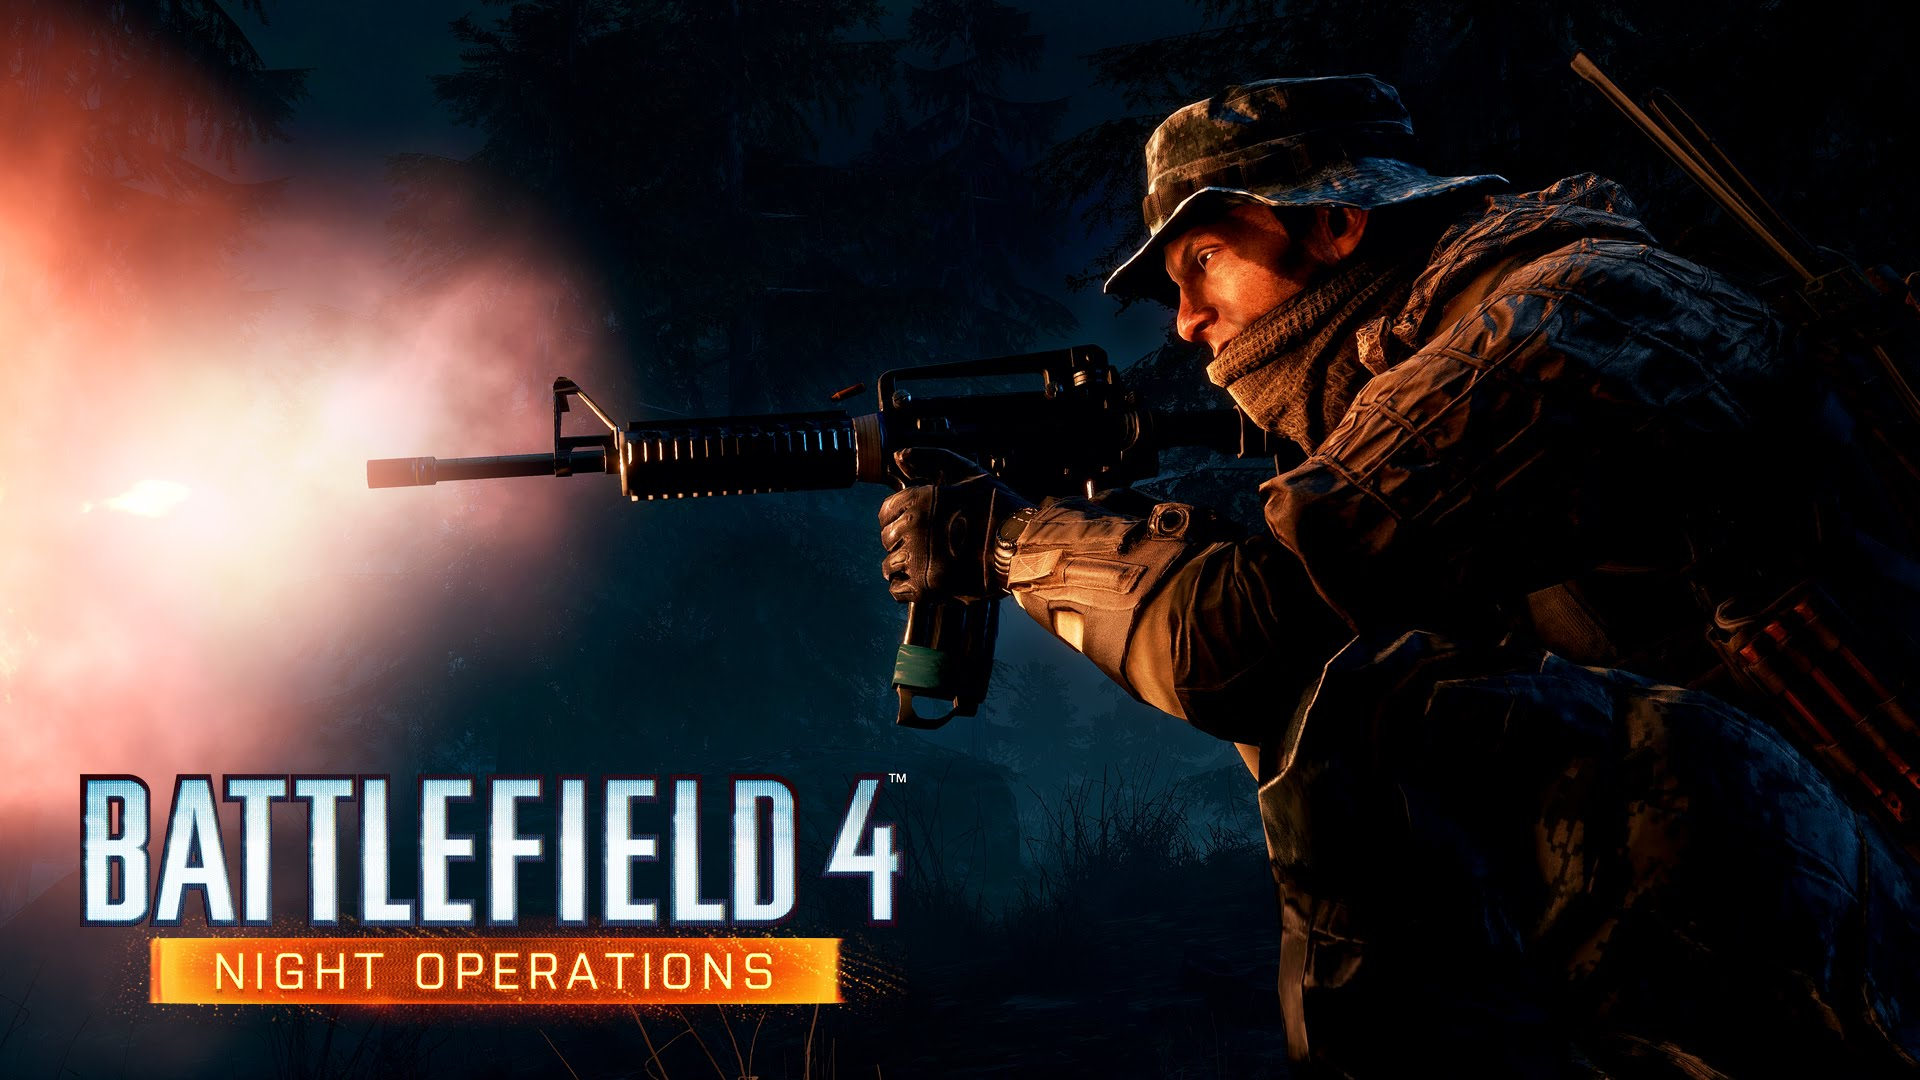 Battlefield 4 Night Operations Cinematic Trailer